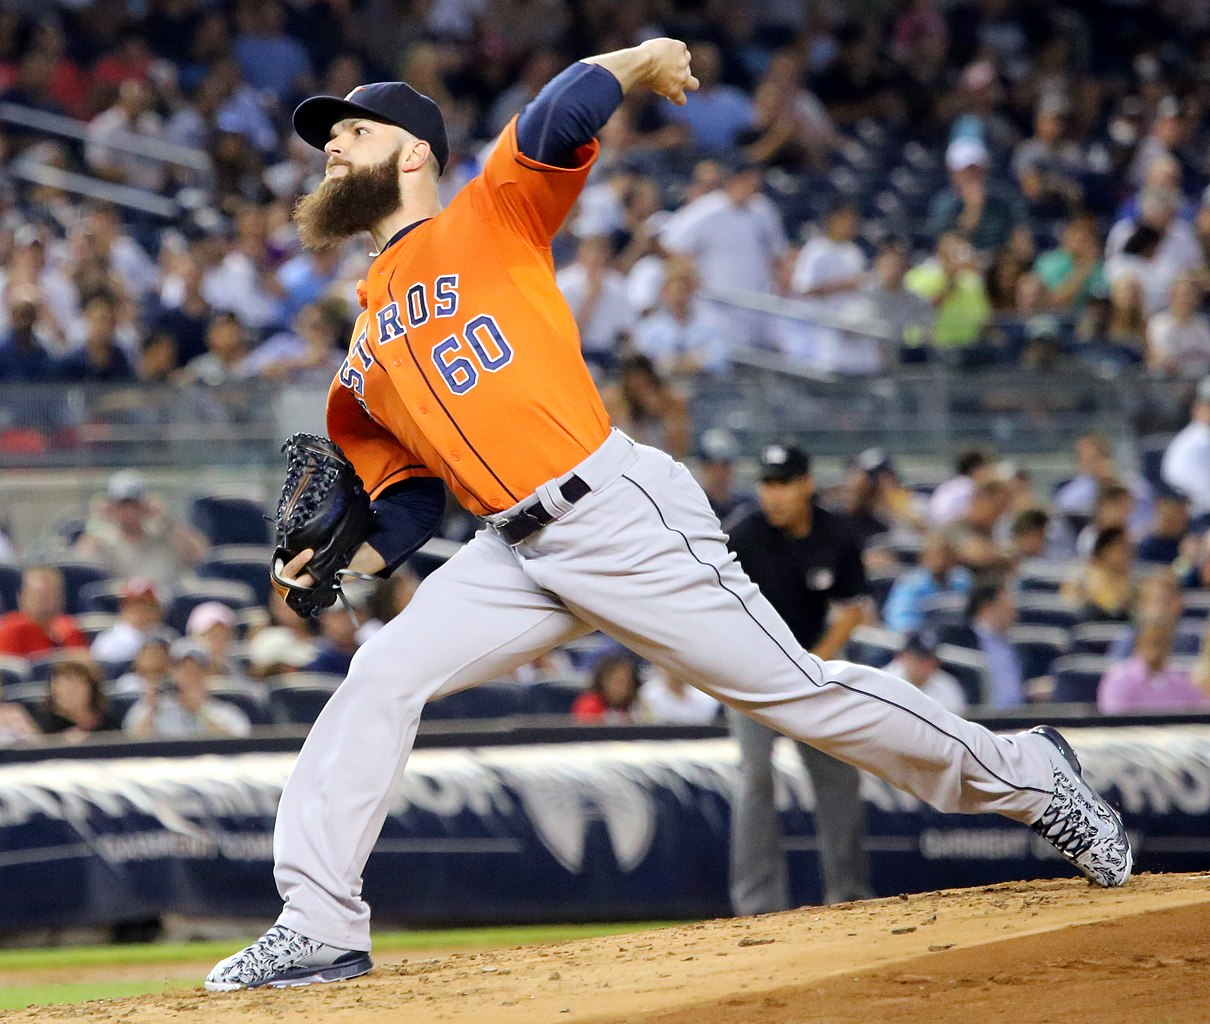 File:Dallas Keuchel On August 25, 2015.jpg